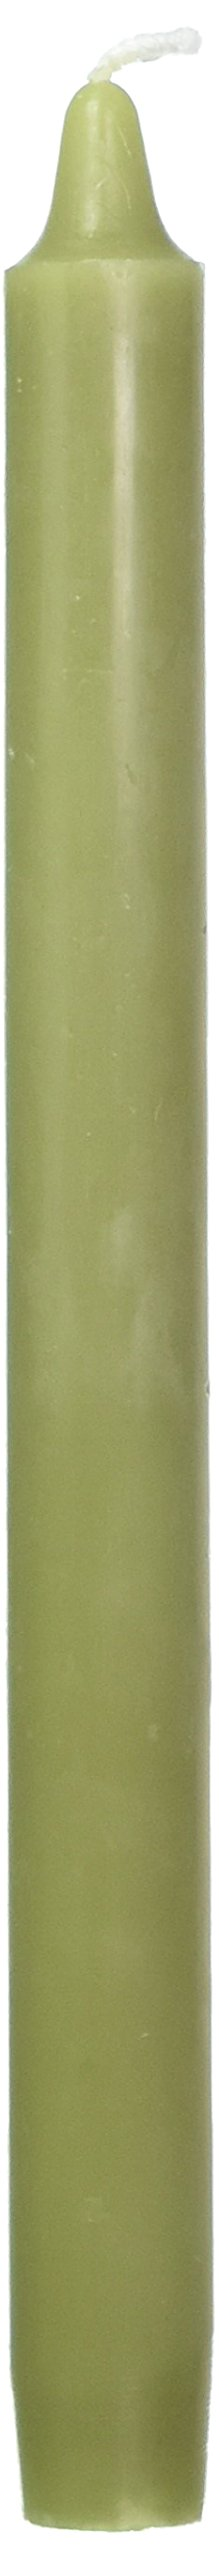 Zest Candle 12-Piece Taper Candles, 10-Inch, Sage Green Straight